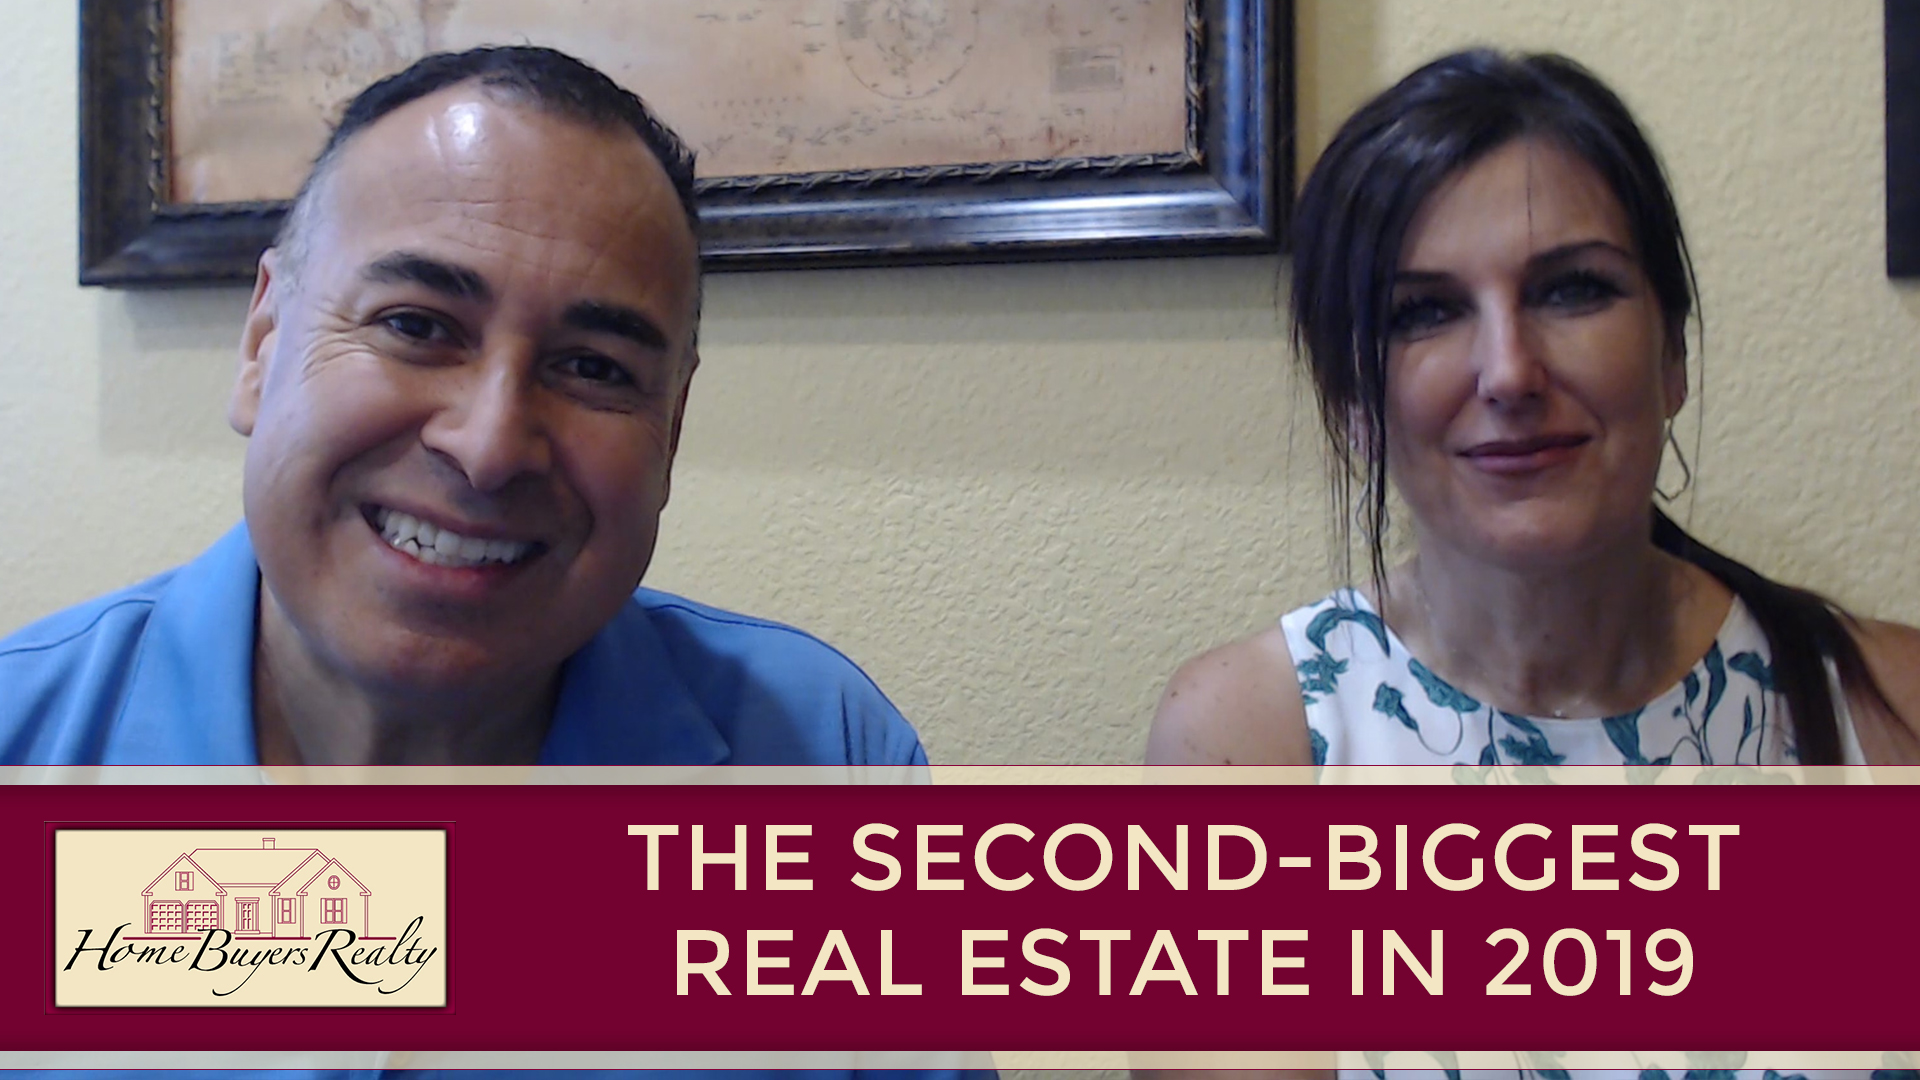 Another Recent Trend in California Real Estate